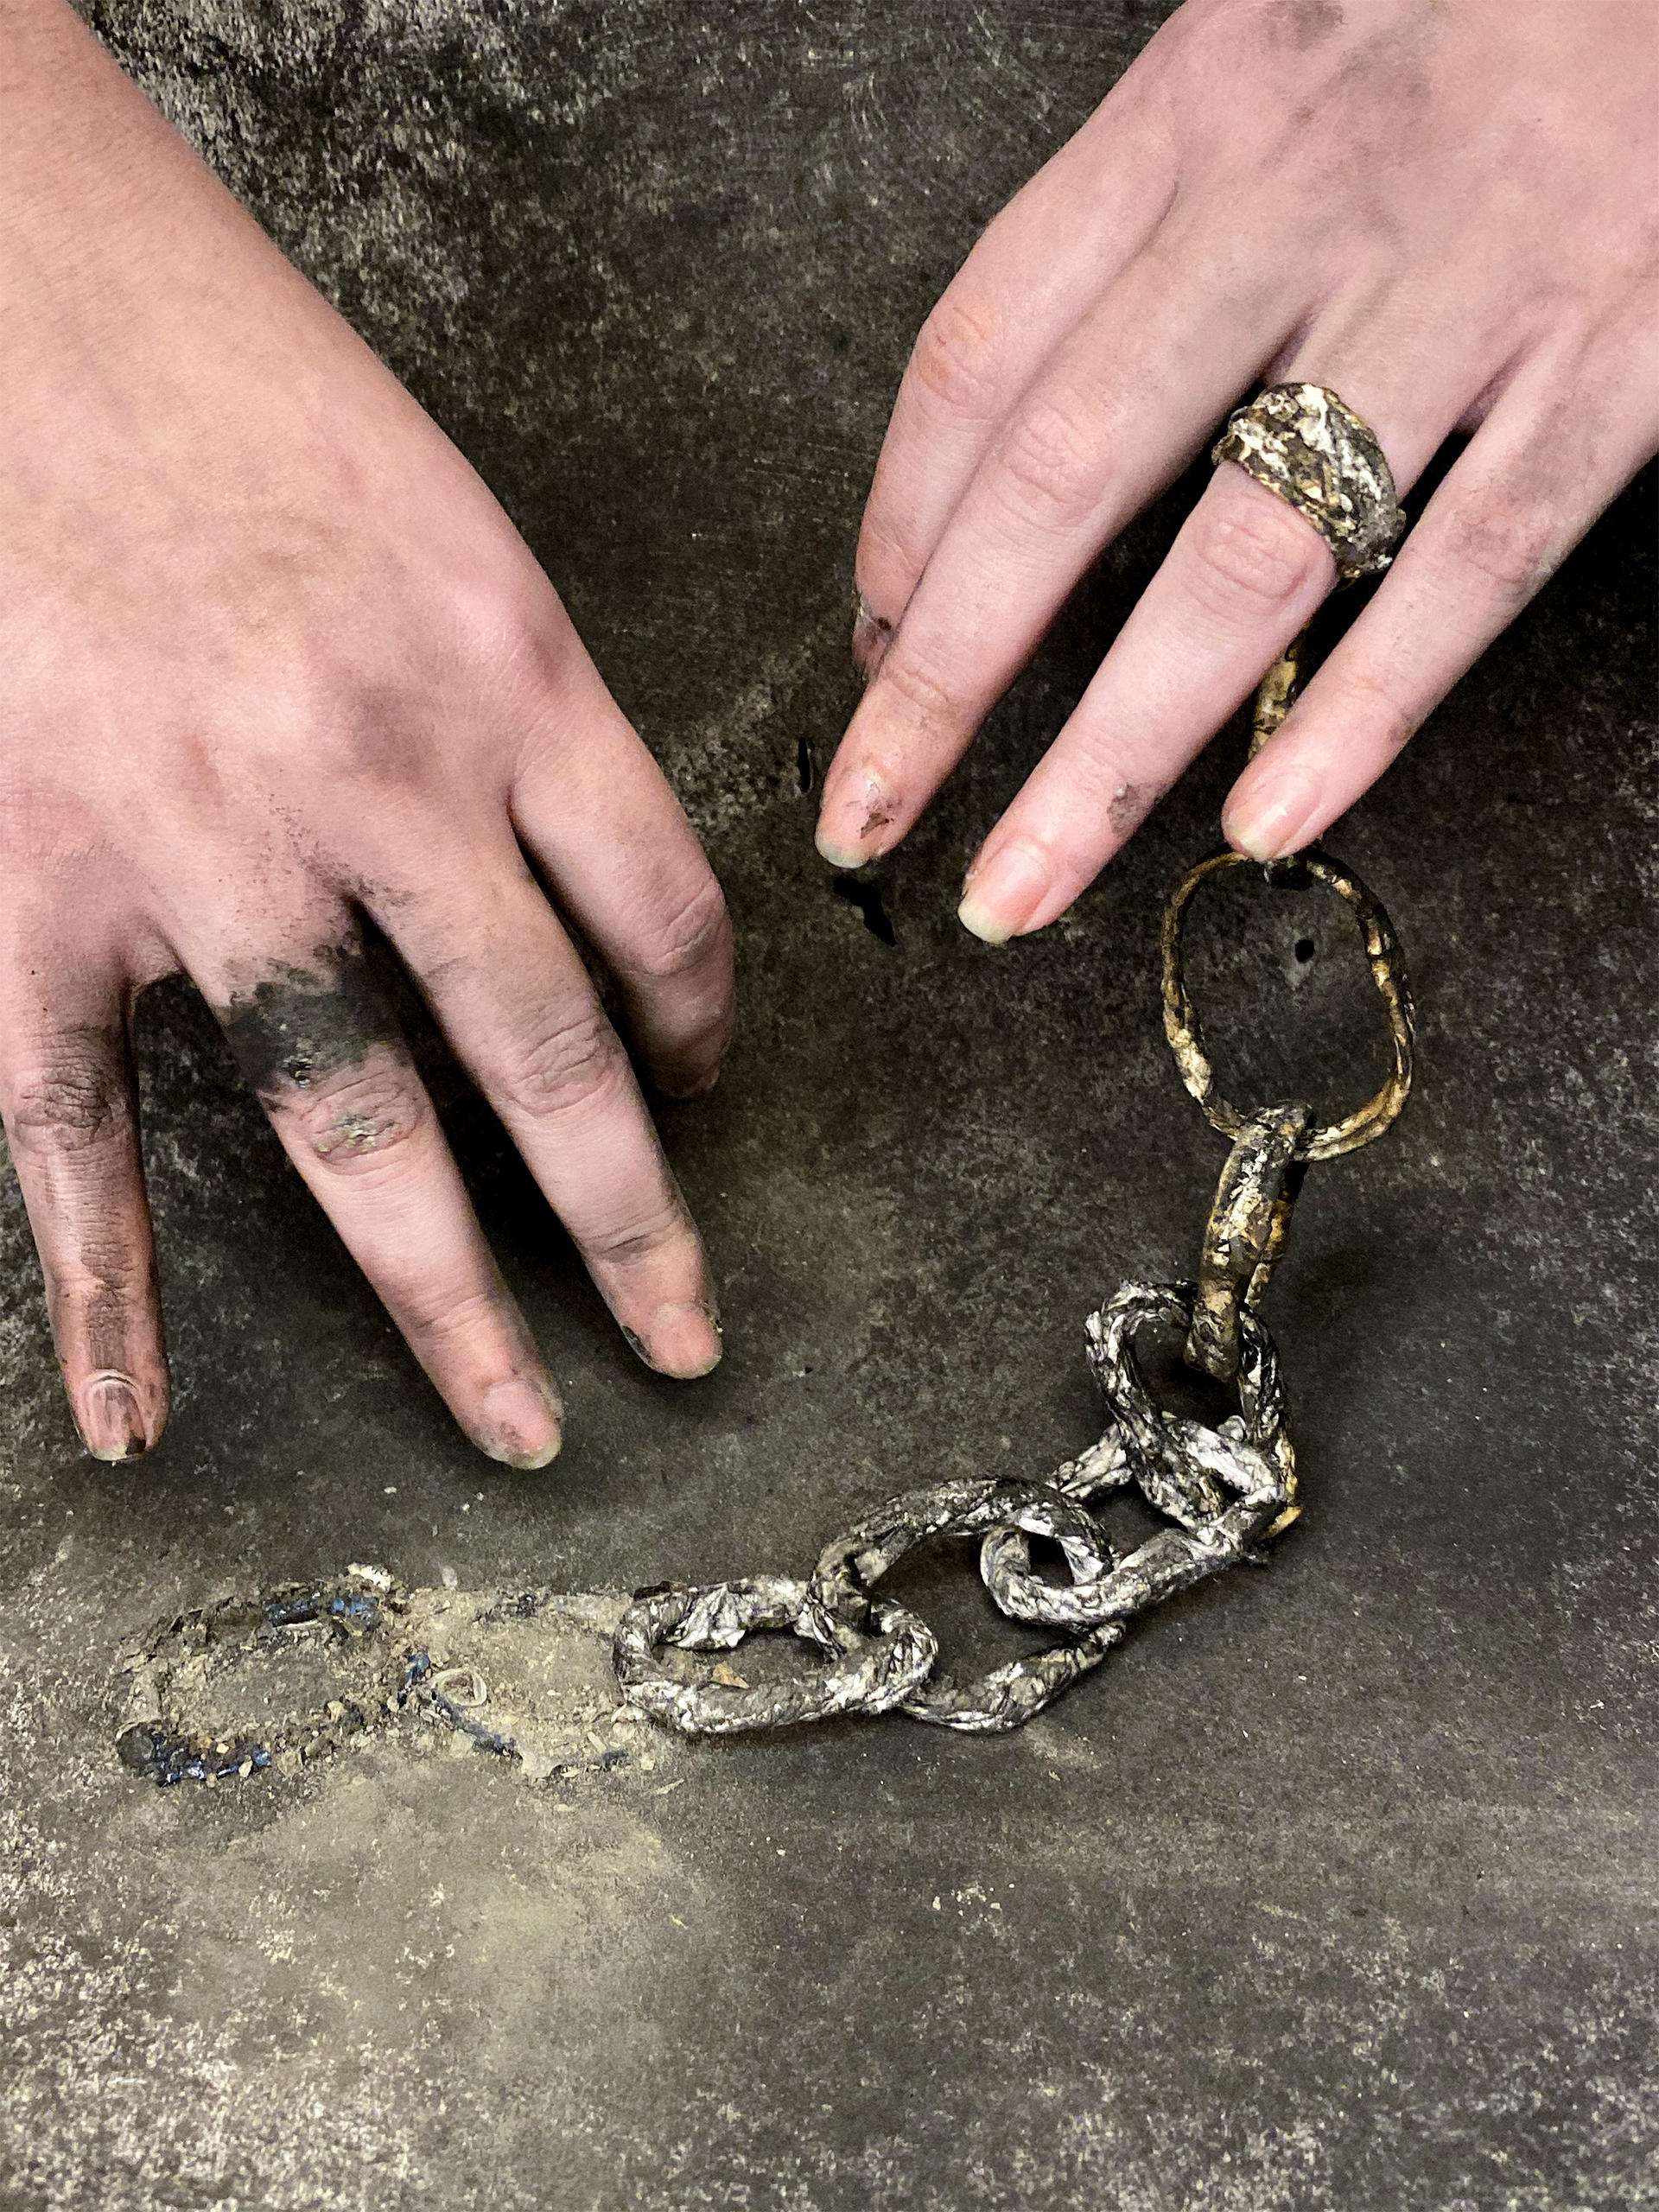 Hands with a chain and charcoal